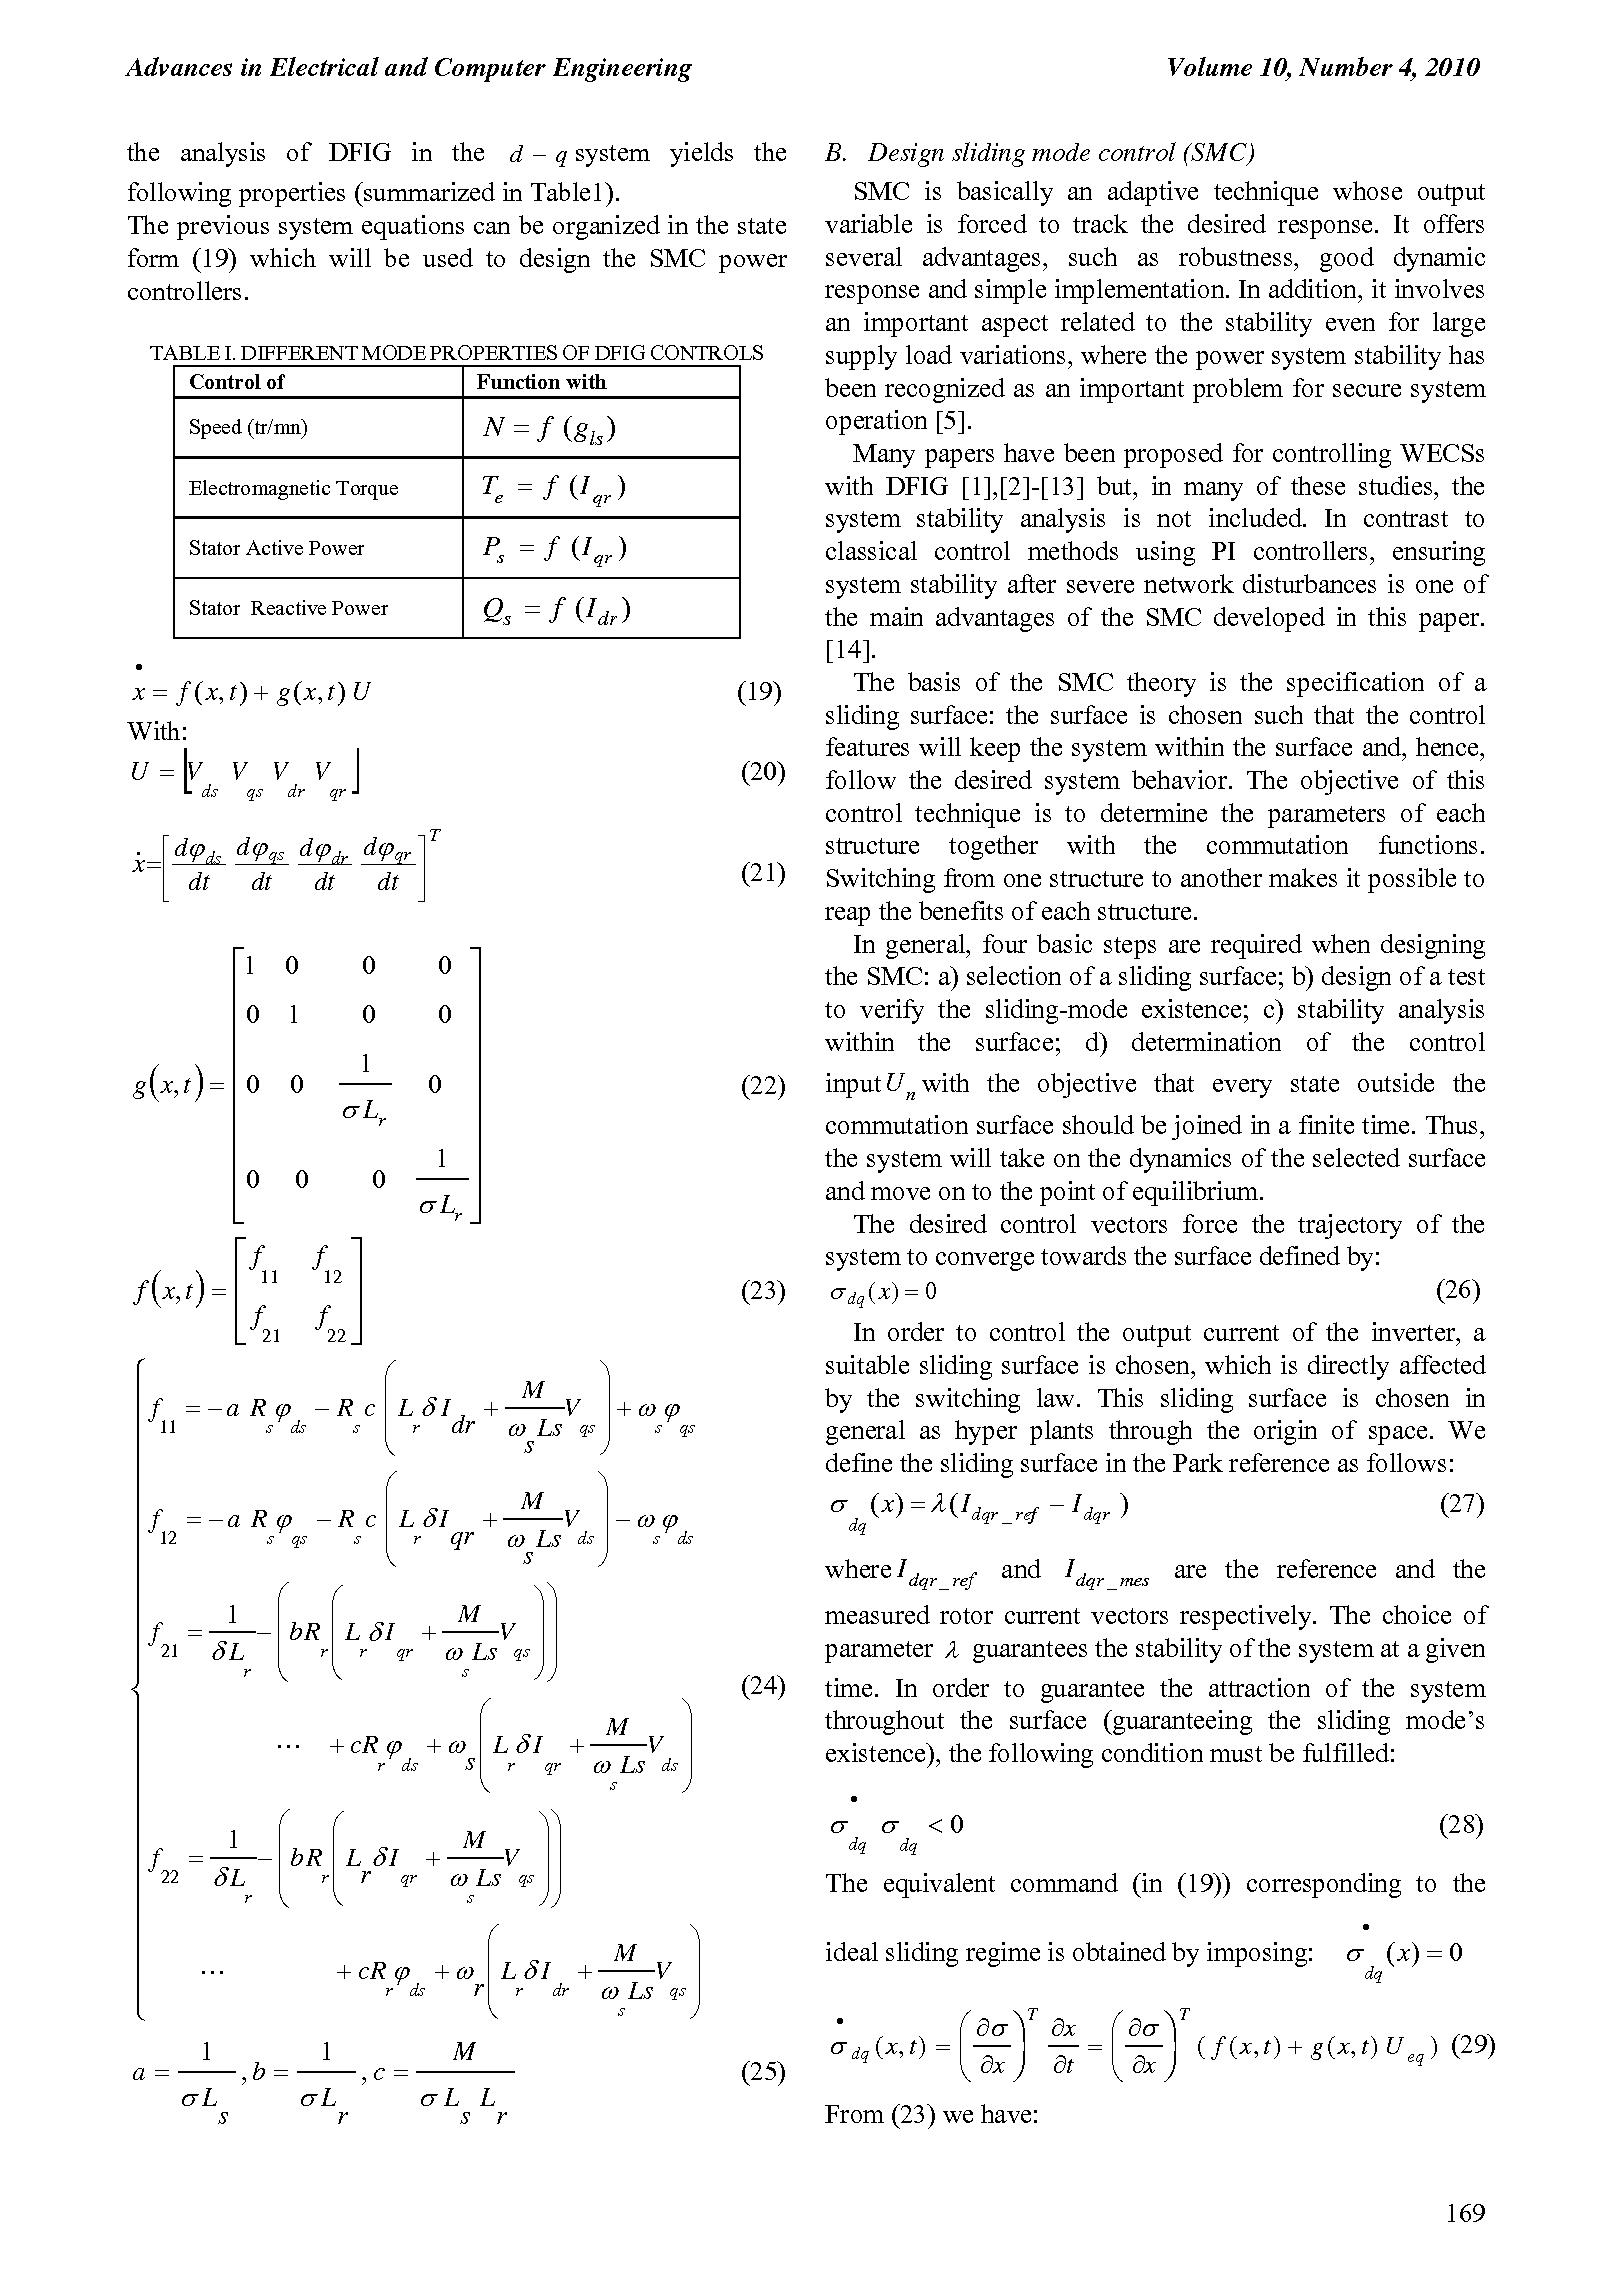 PDF Quickview for paper with DOI:10.4316/AECE.2010.04027